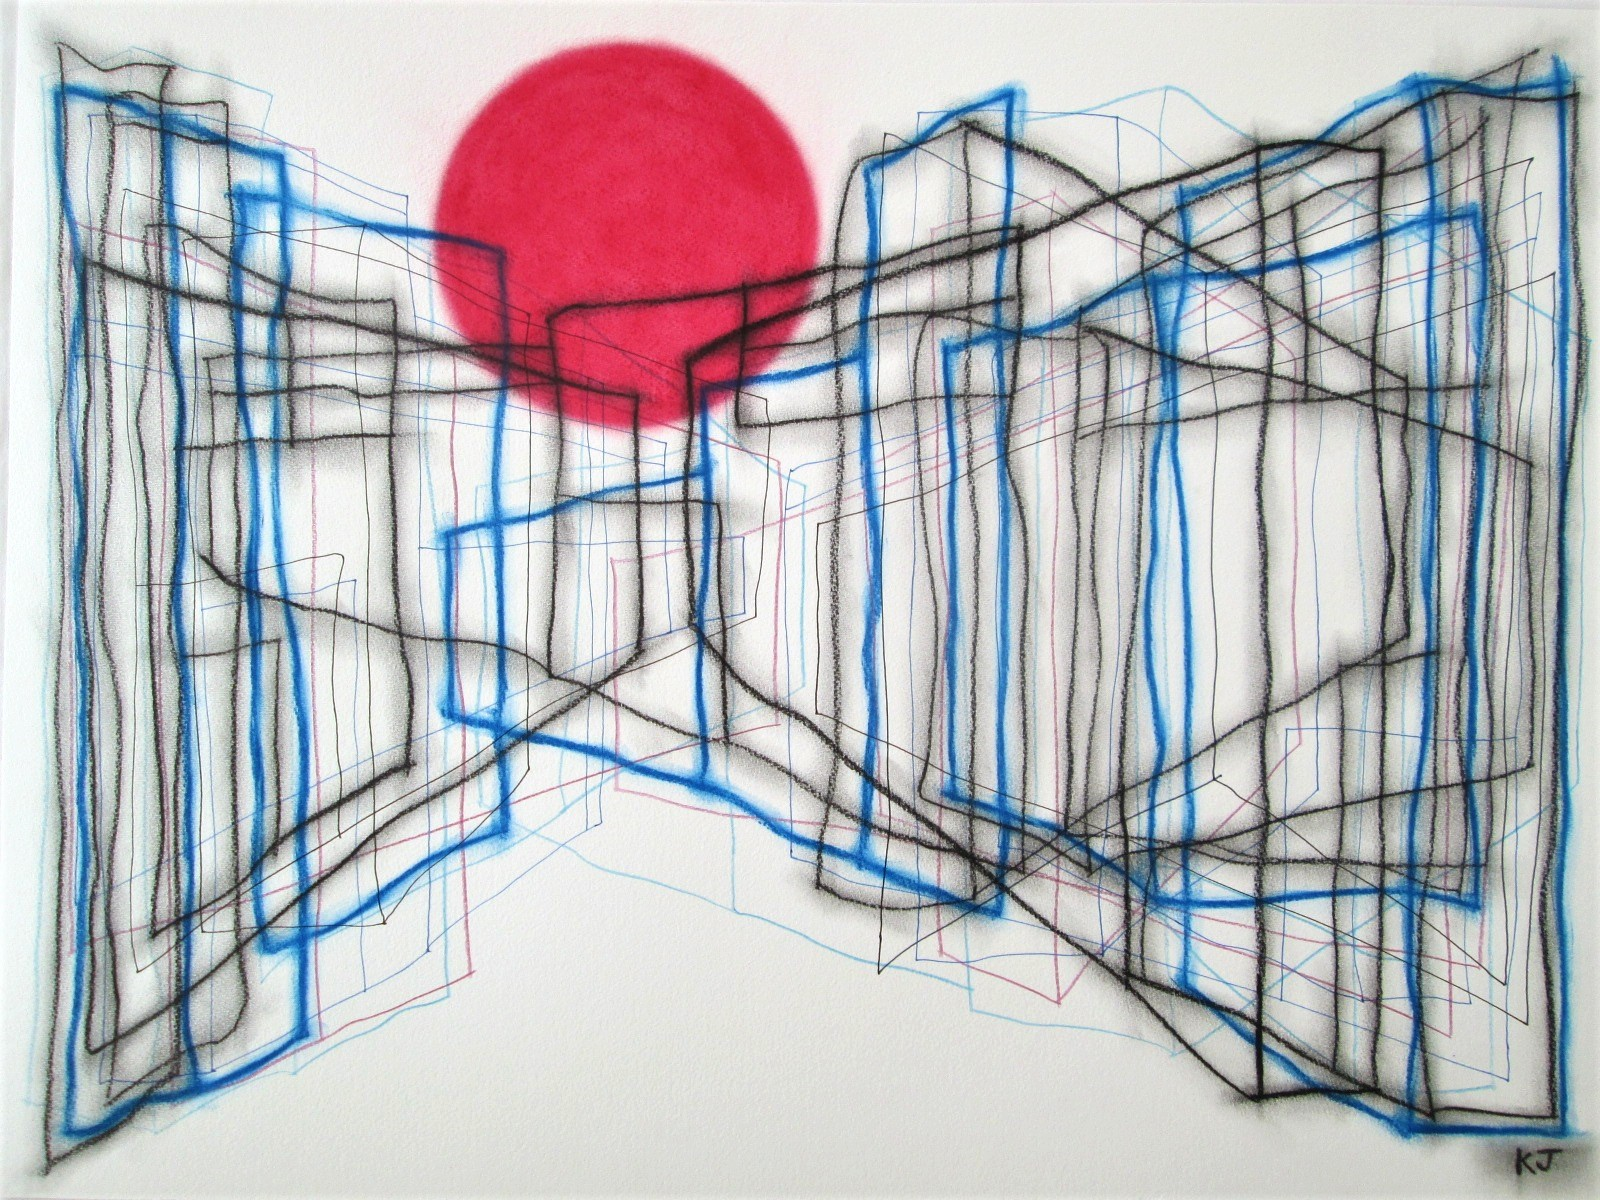 Red Circle artwork by Kevin Jones - art listed for sale on Artplode